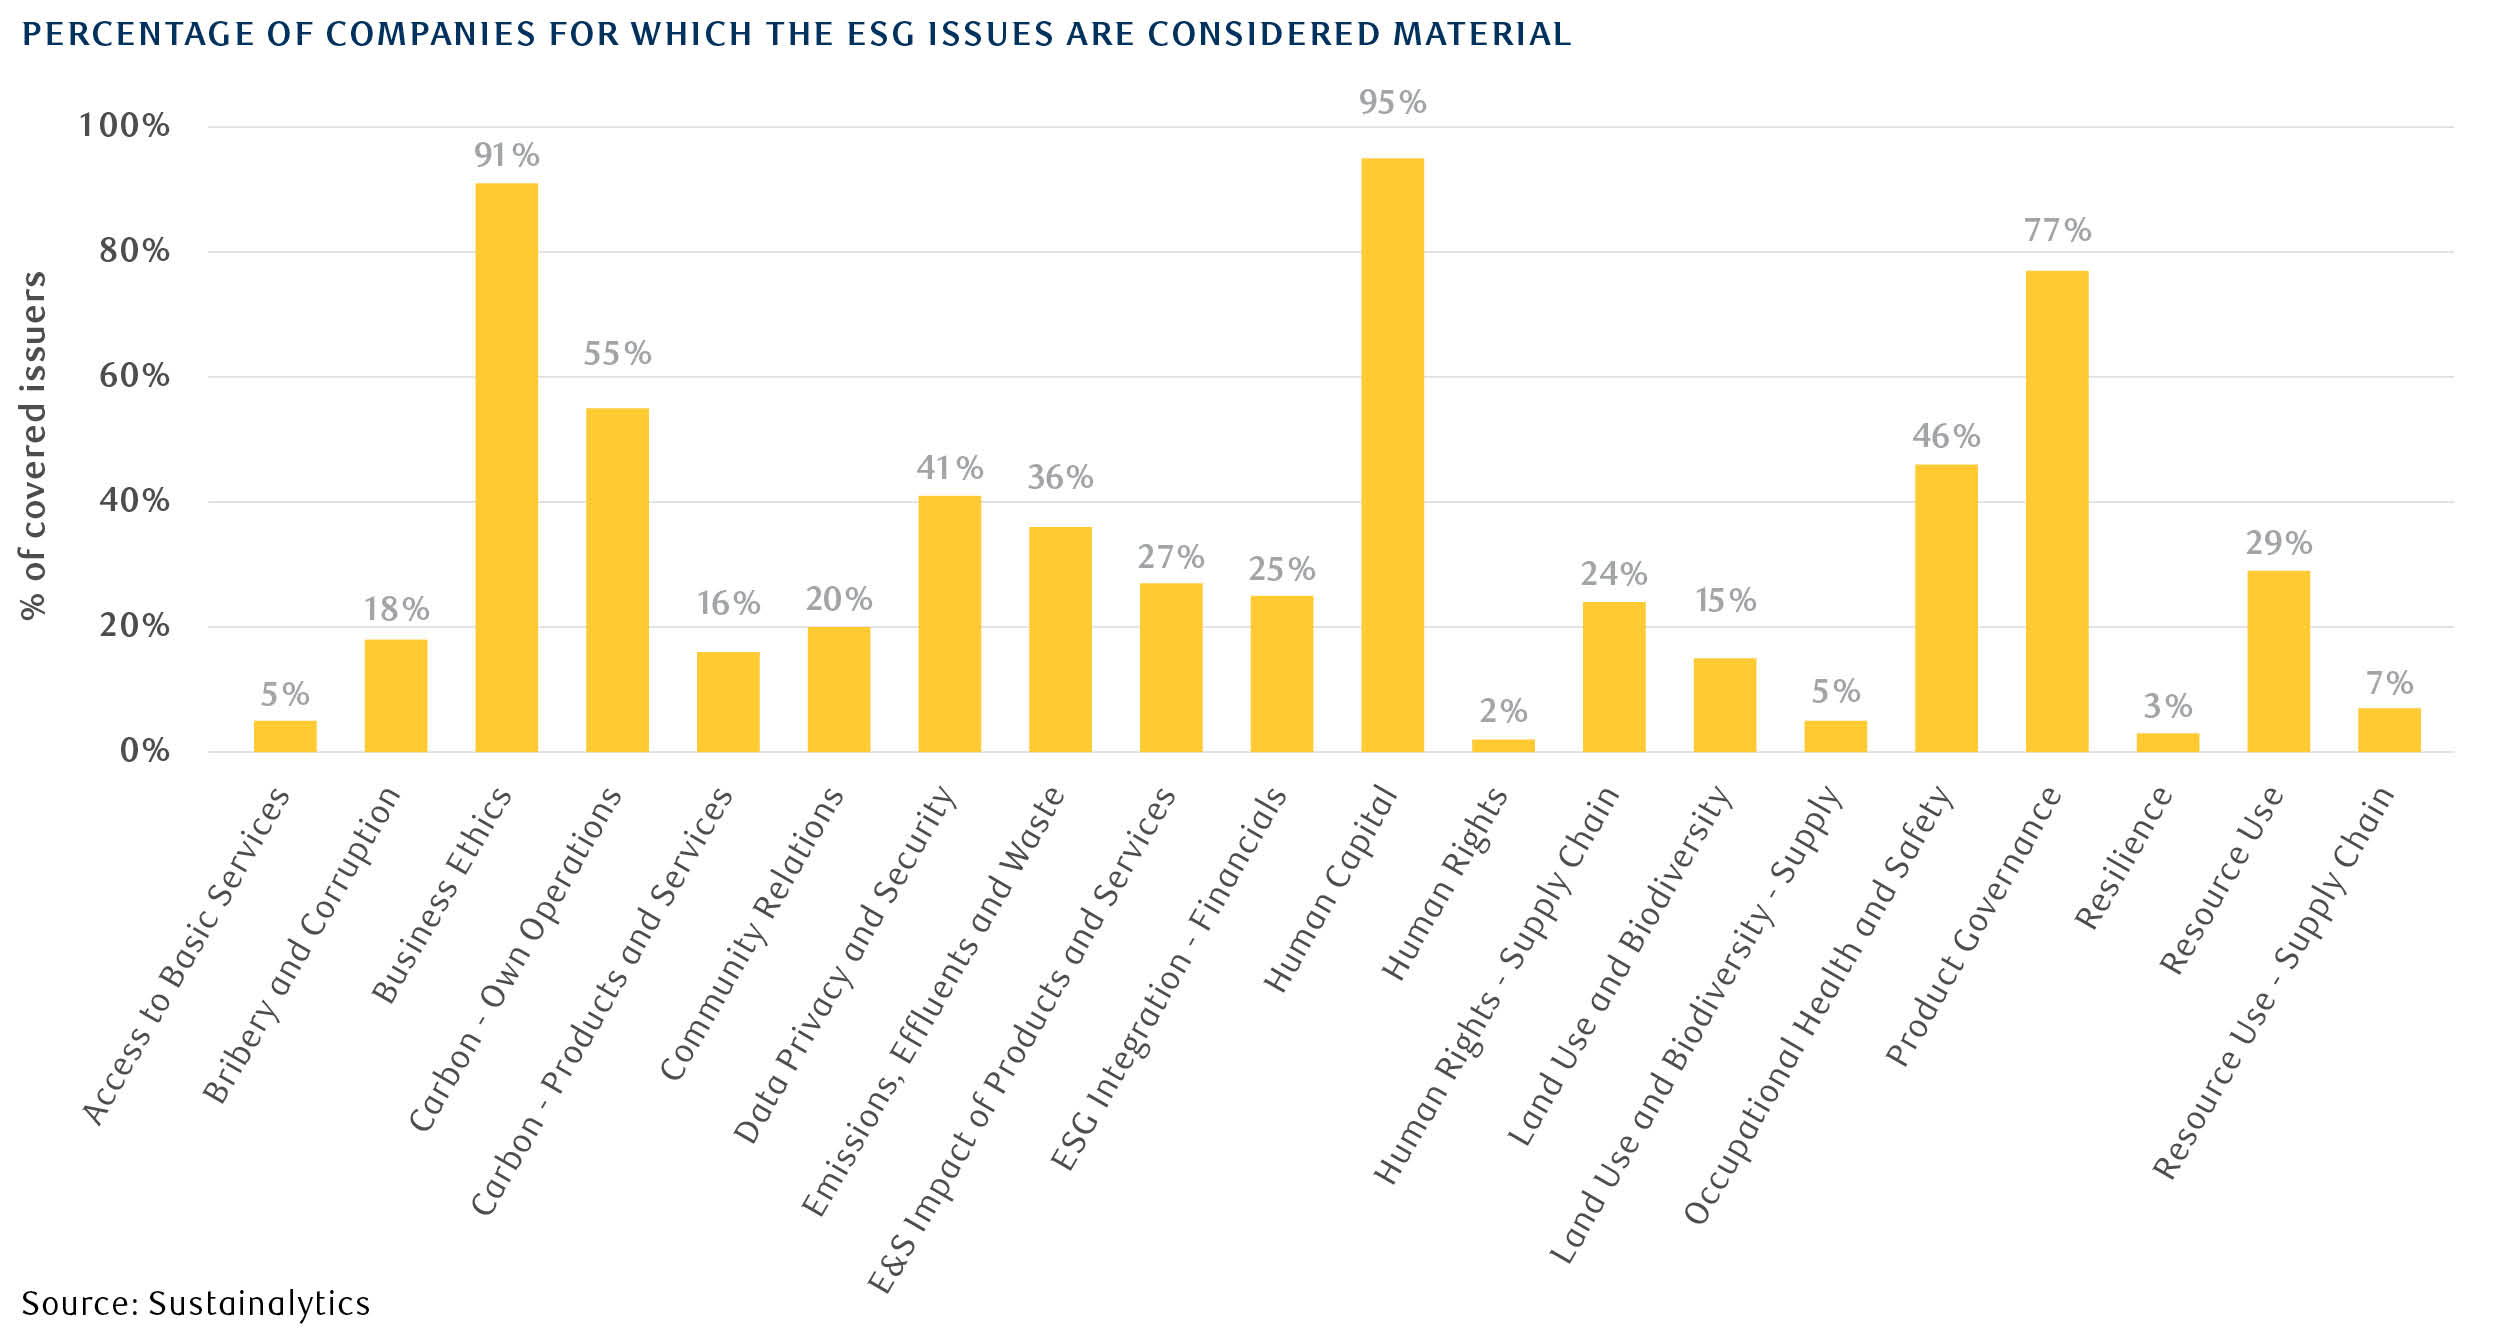 Percentage of companies for which the ESG issues are considered material